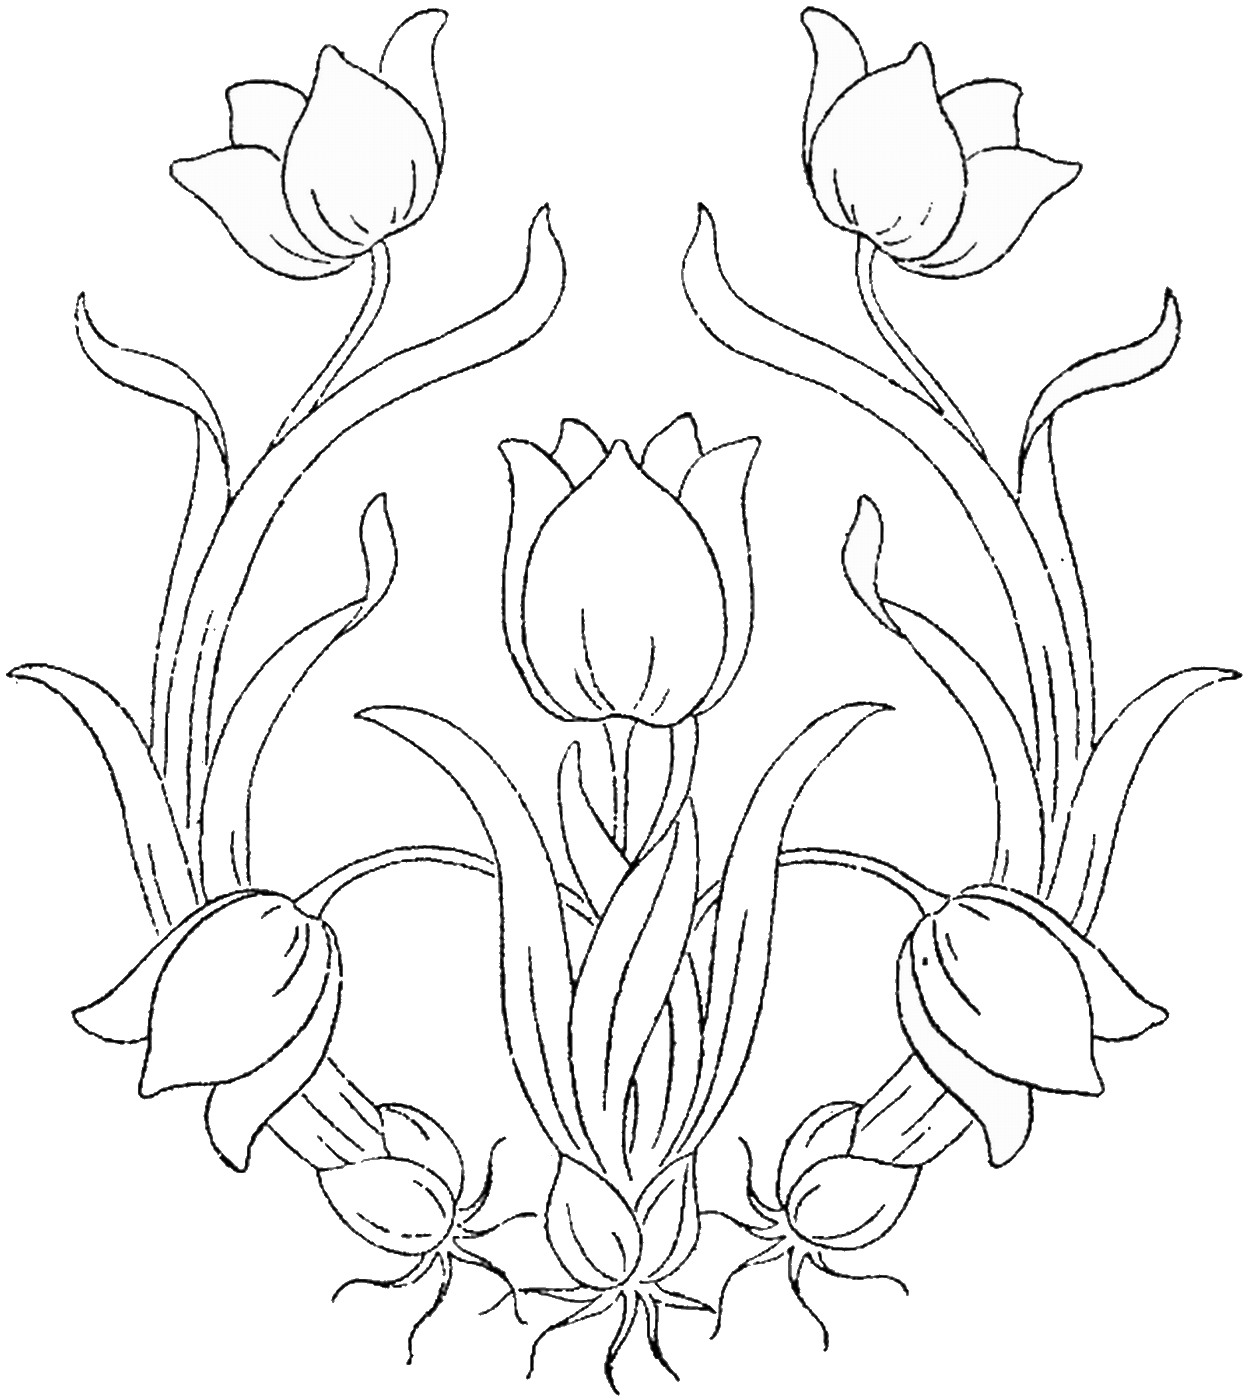 for Flower crown coloring page